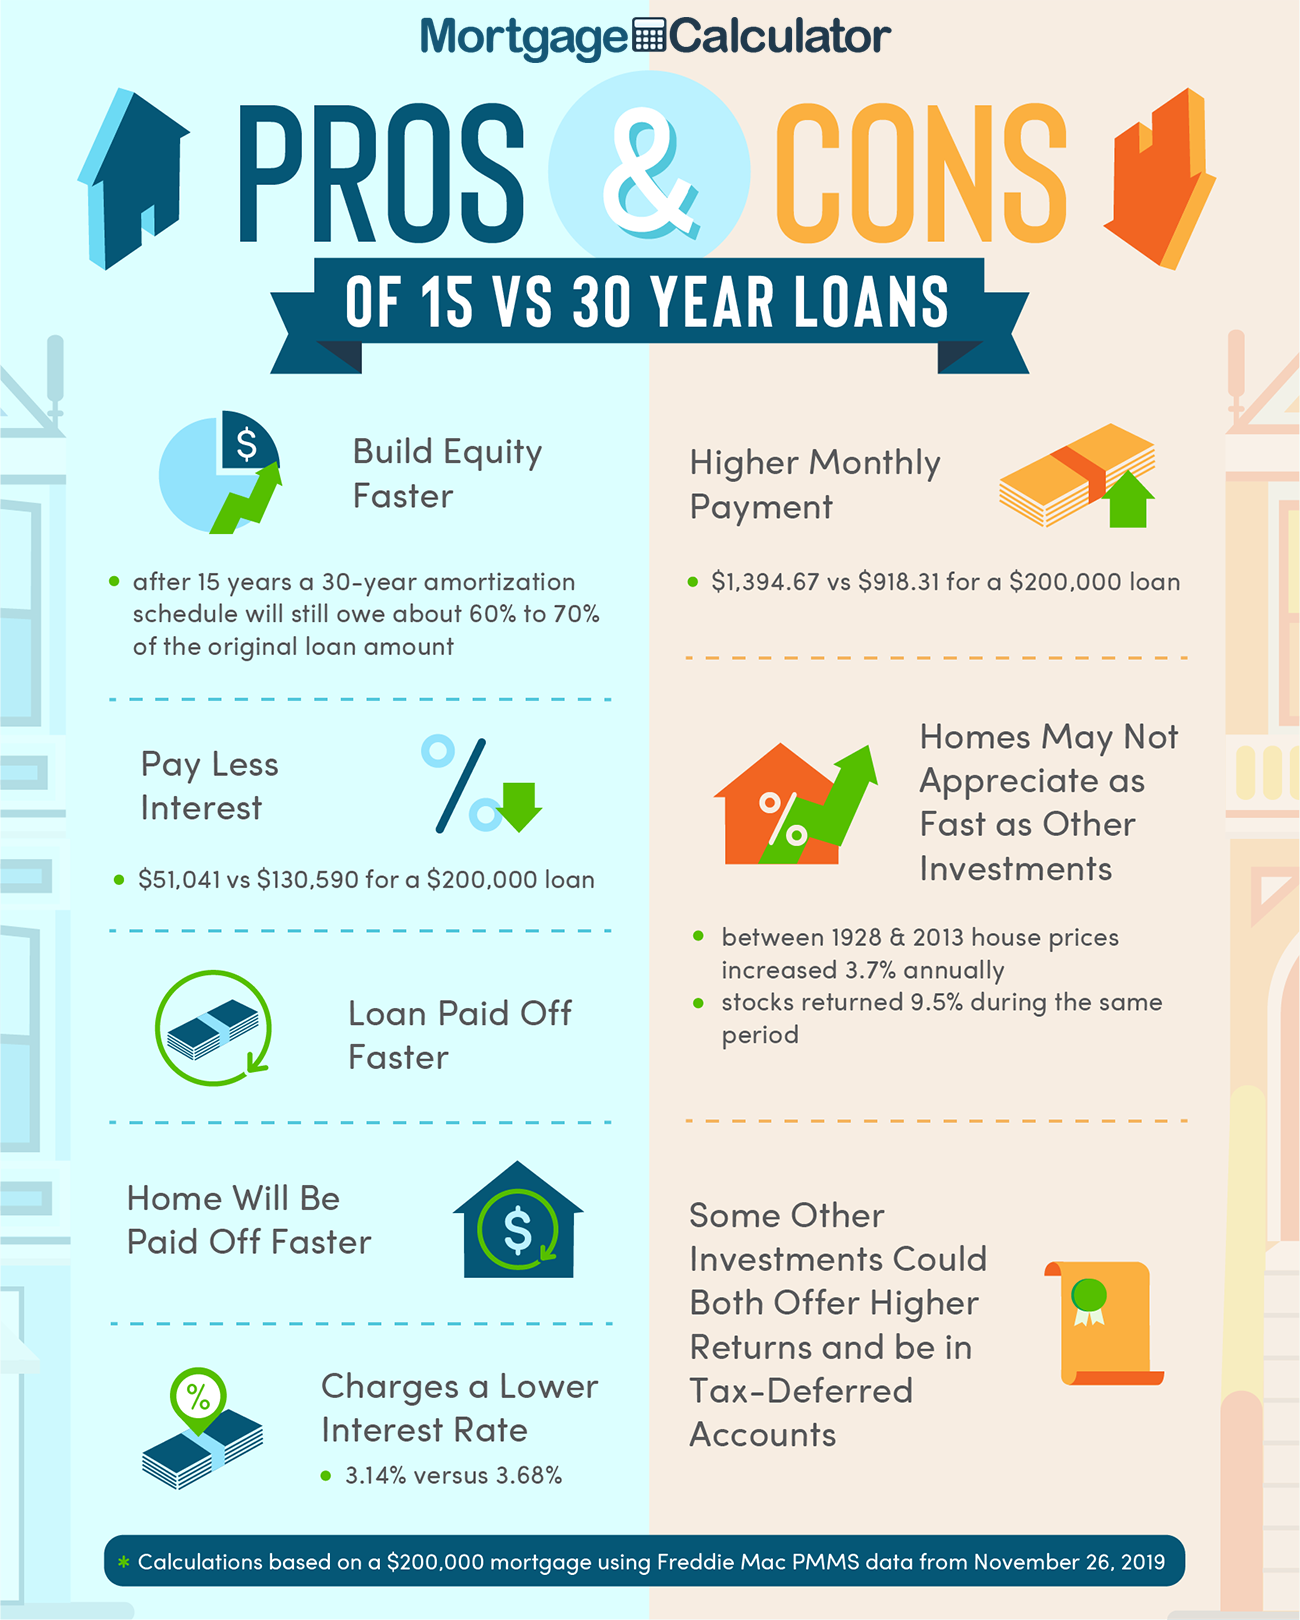 15 Year Mortgage Pros and Cons.